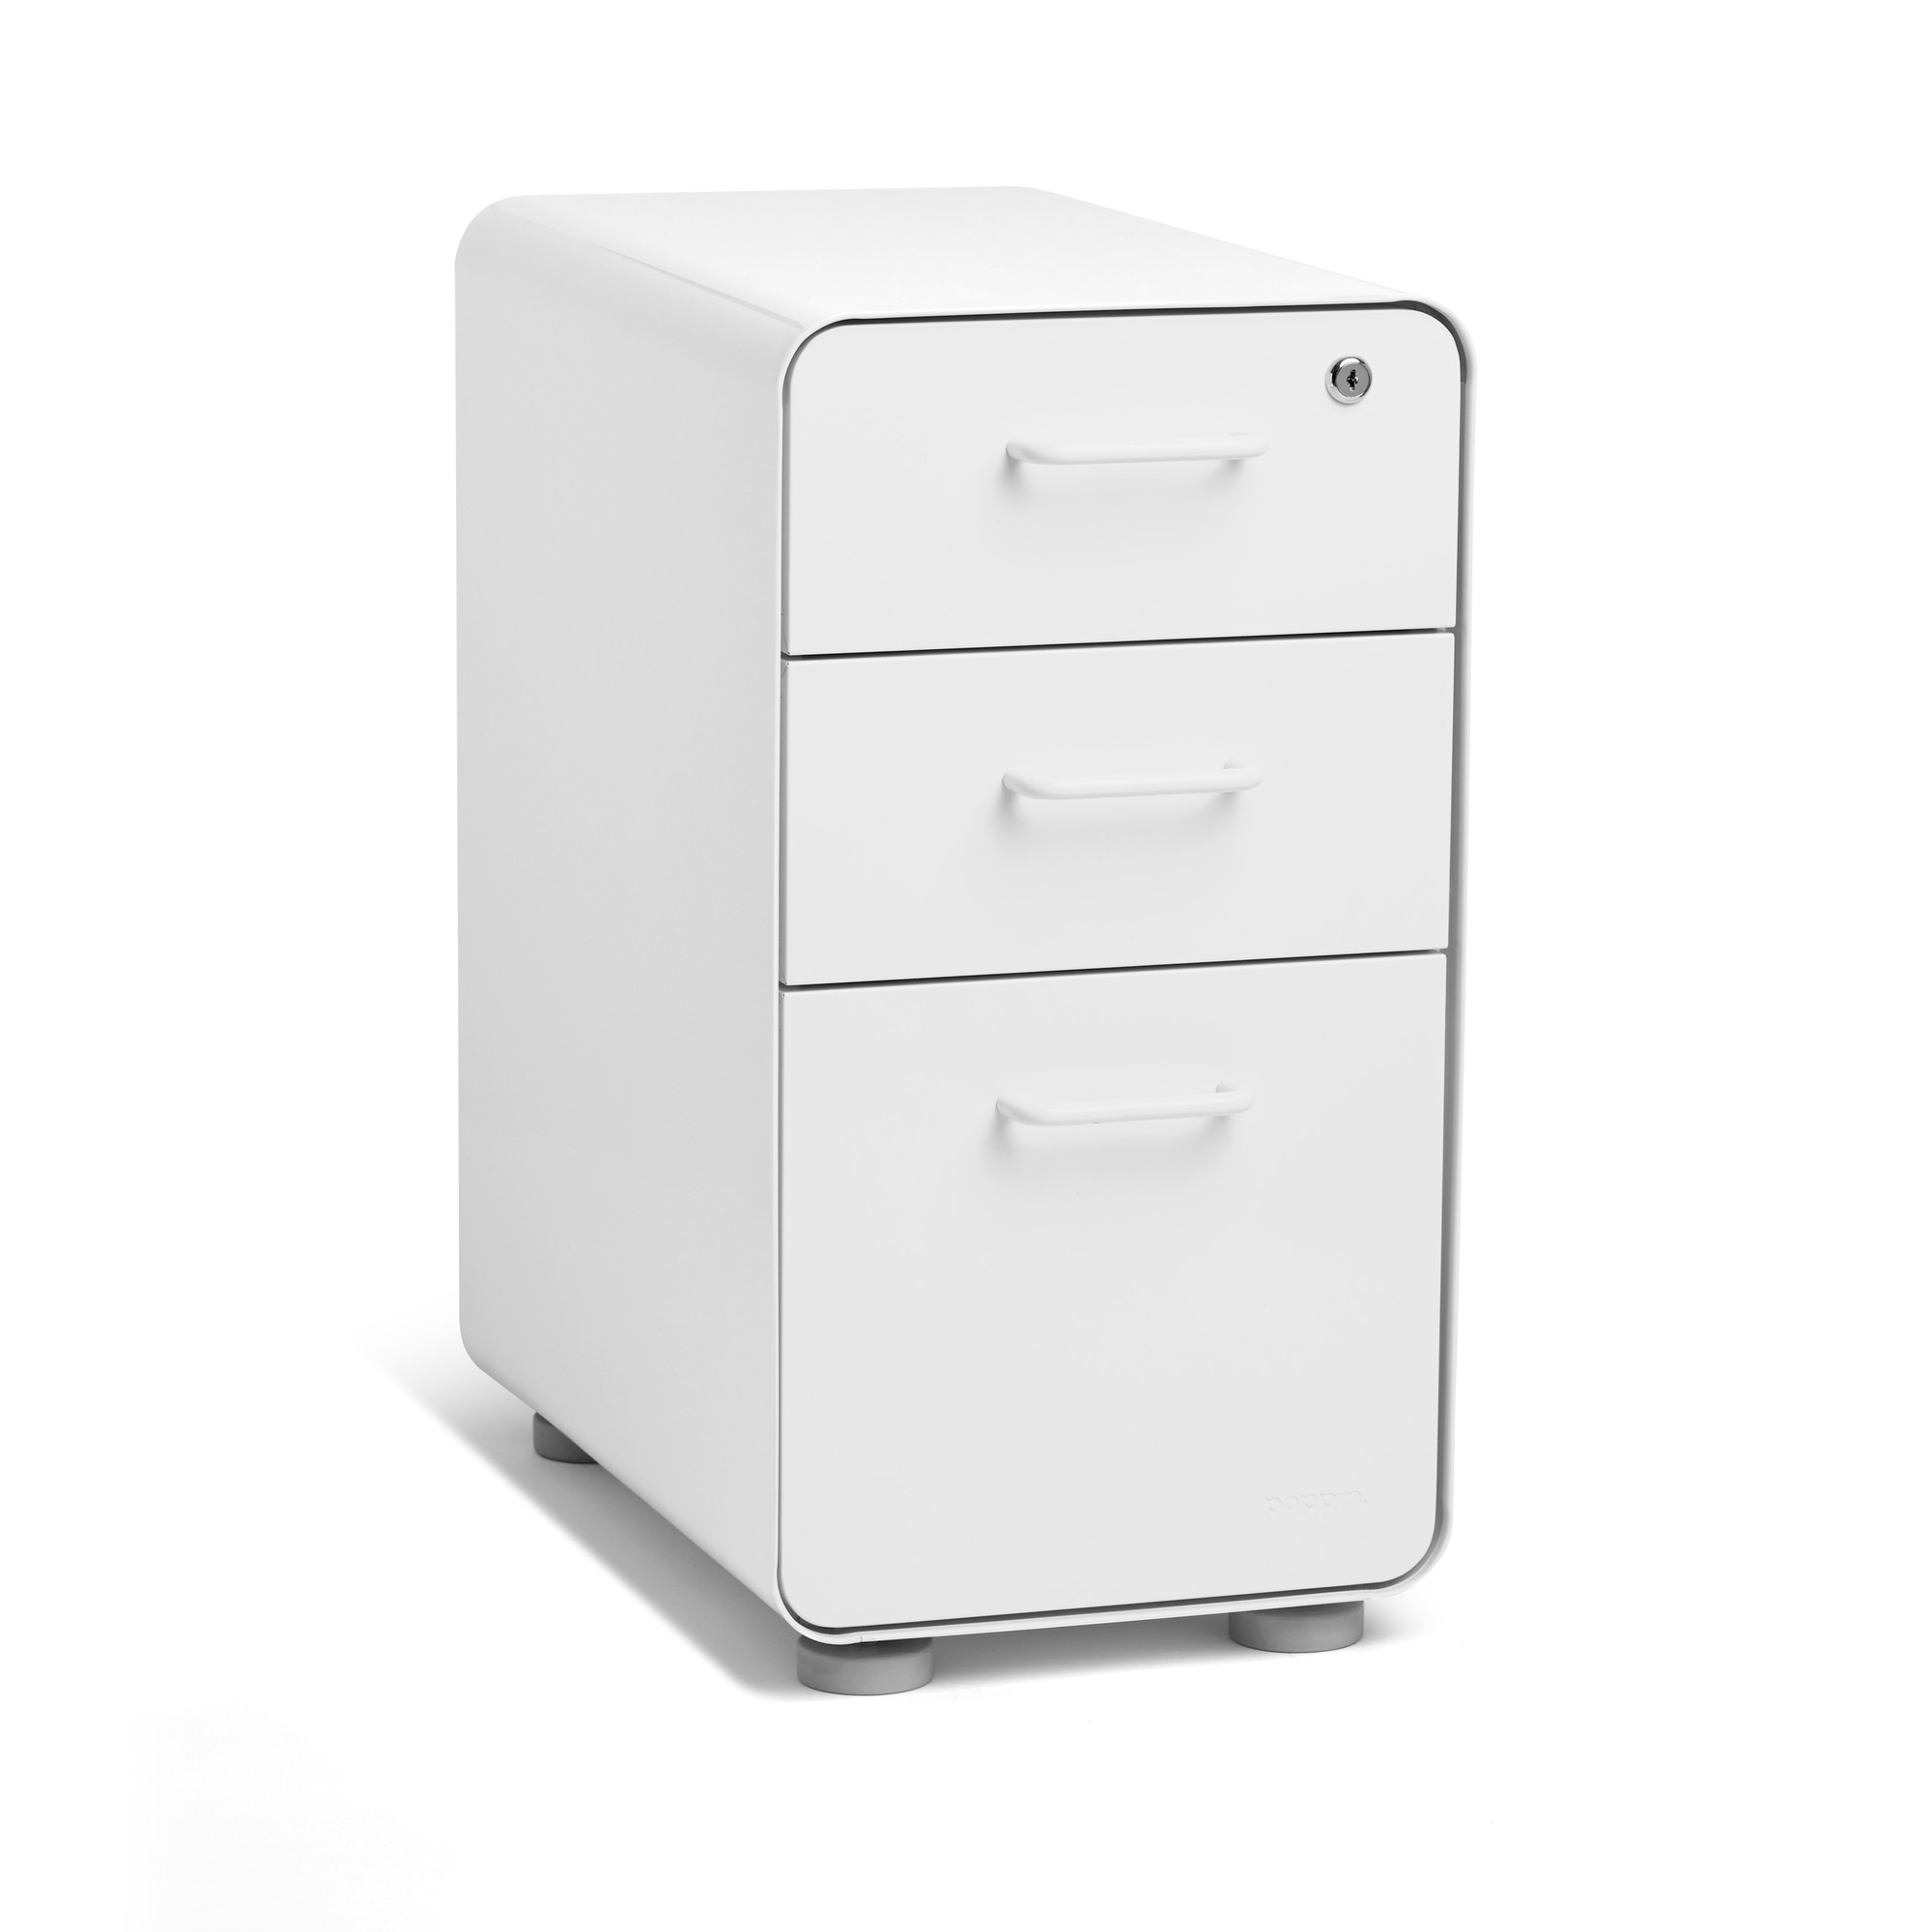 white slim stow 3-drawer file cabinet | file cabinets | poppin 3 drawer file cabinet